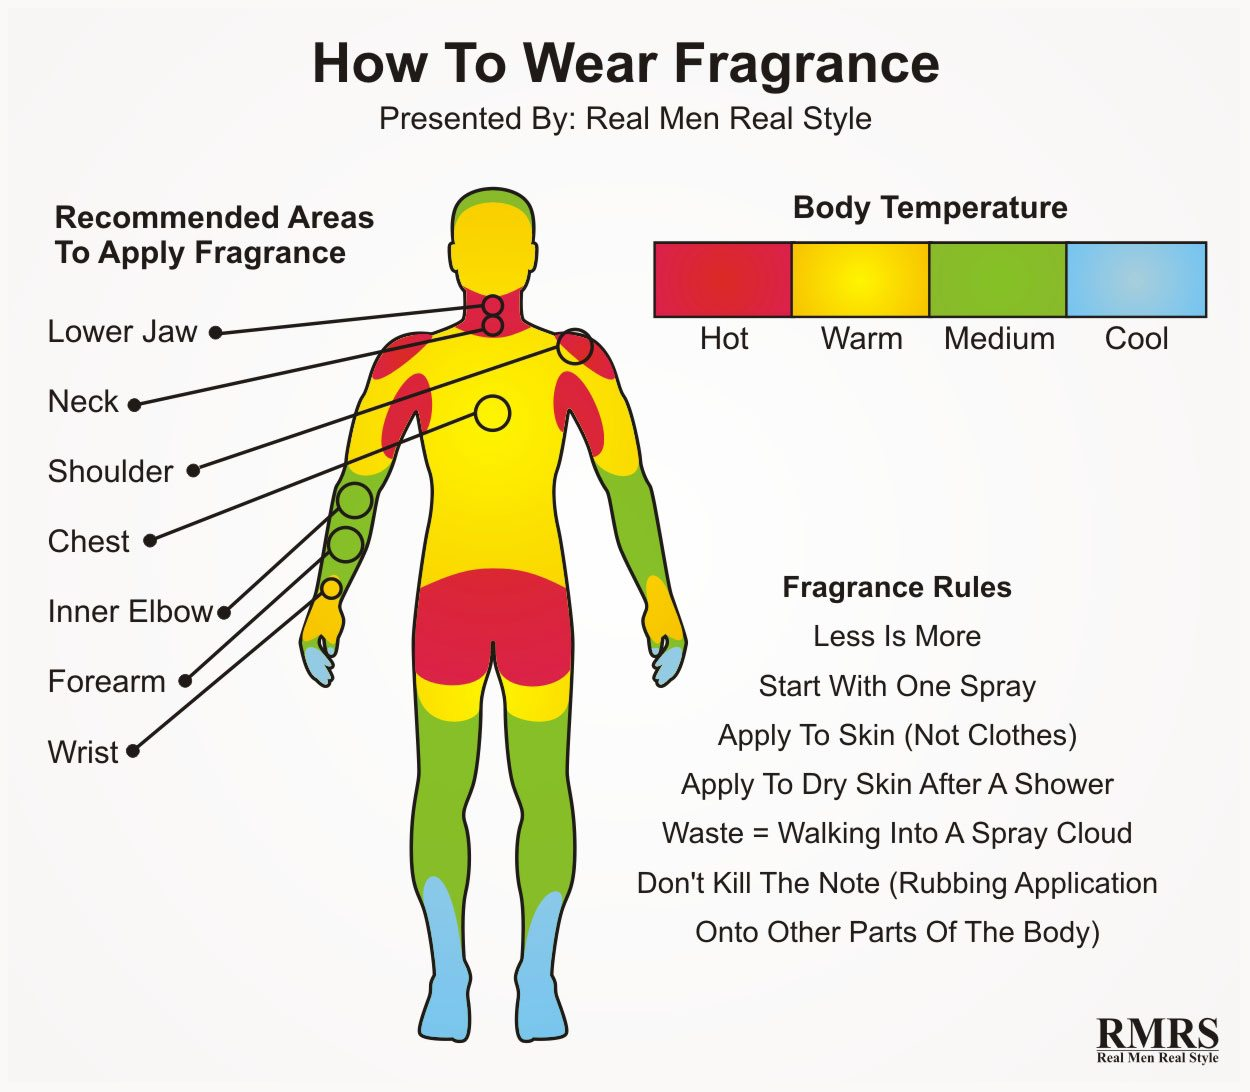 men guide to wearing fragrance